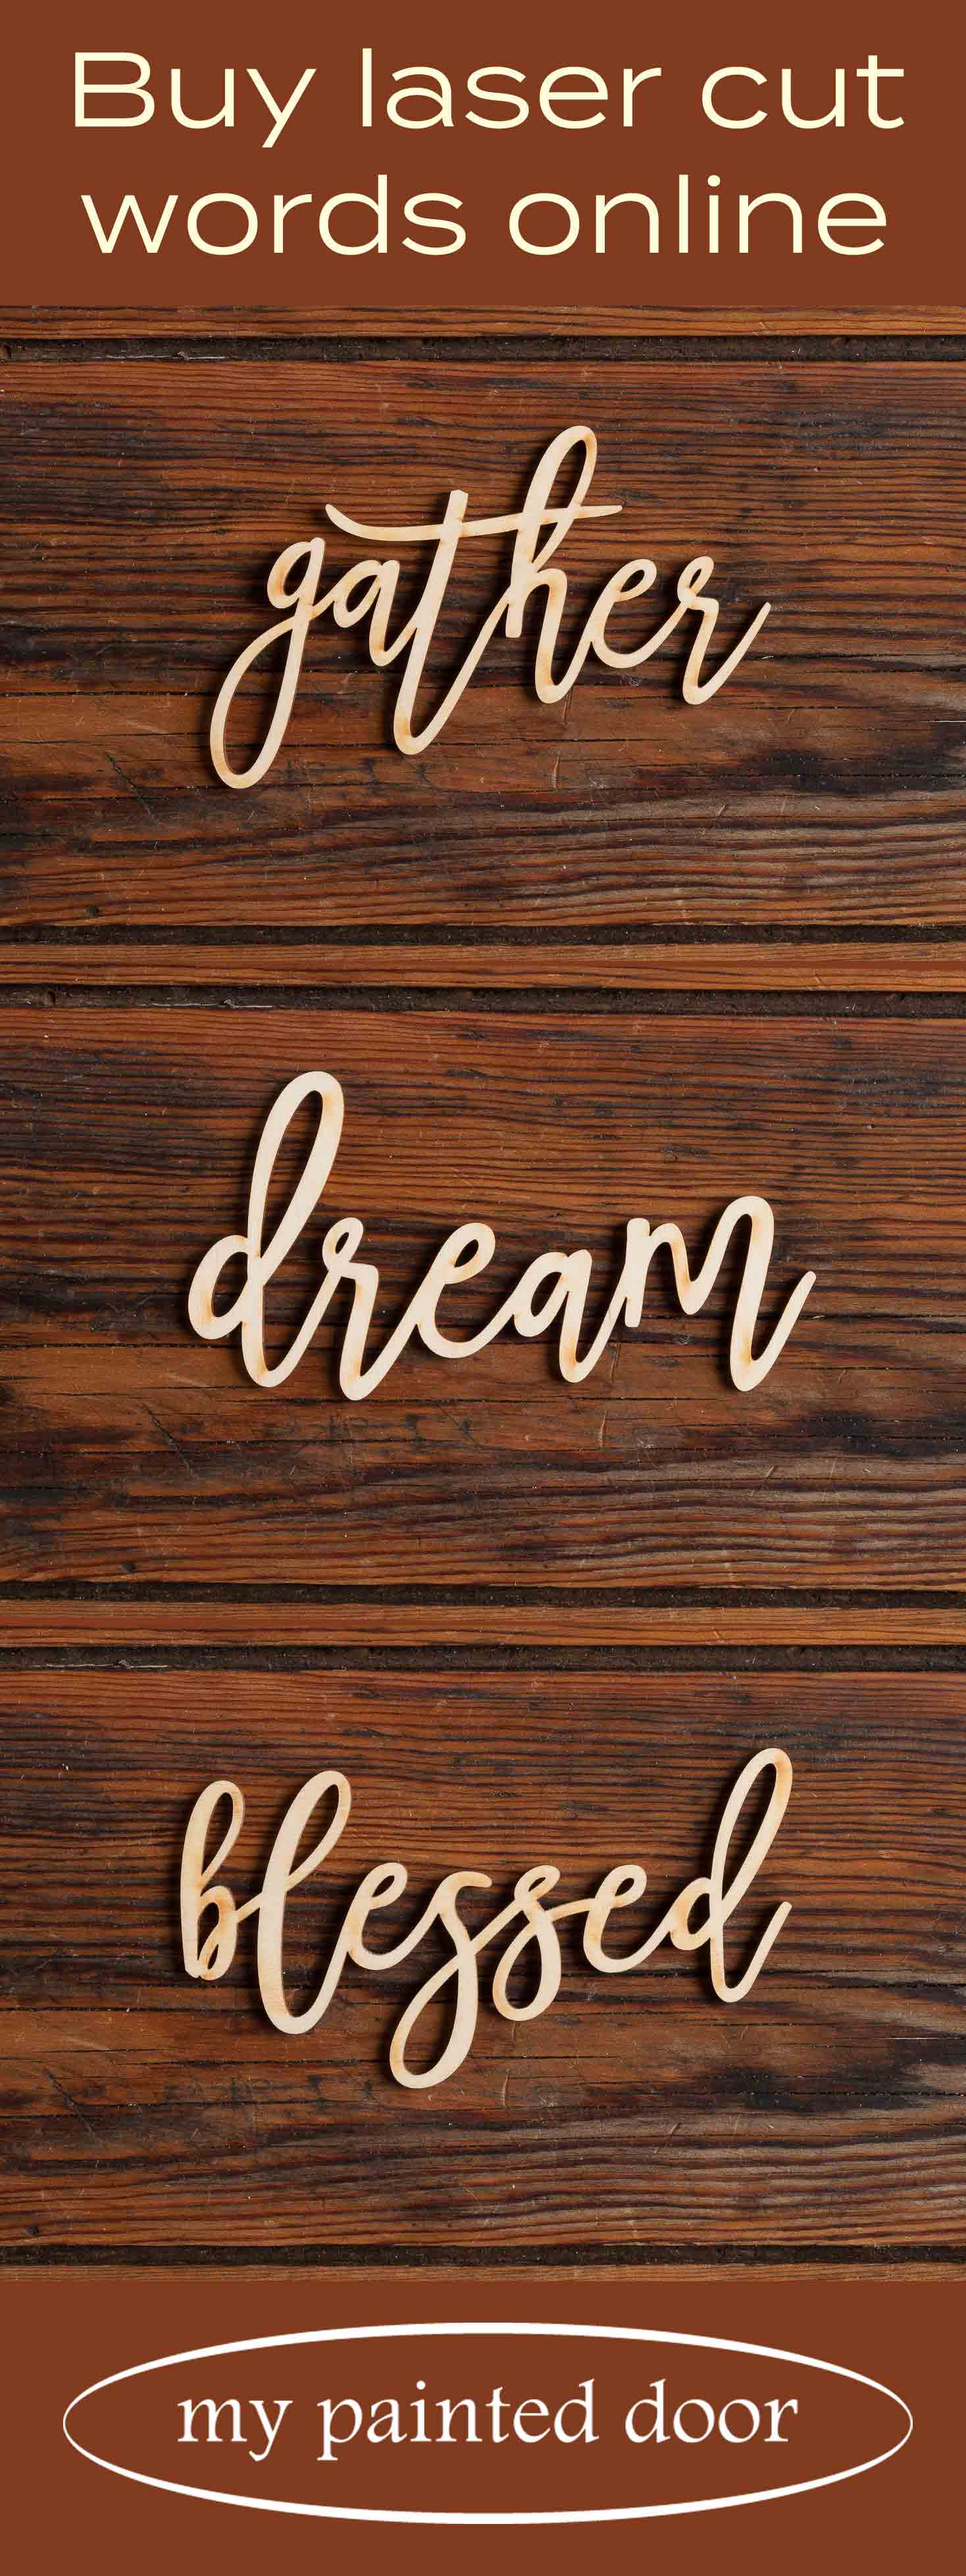 Buy lasercut words online at My Painted Door. Words include gather, dream, blessed, farmhouse, coffee and more!